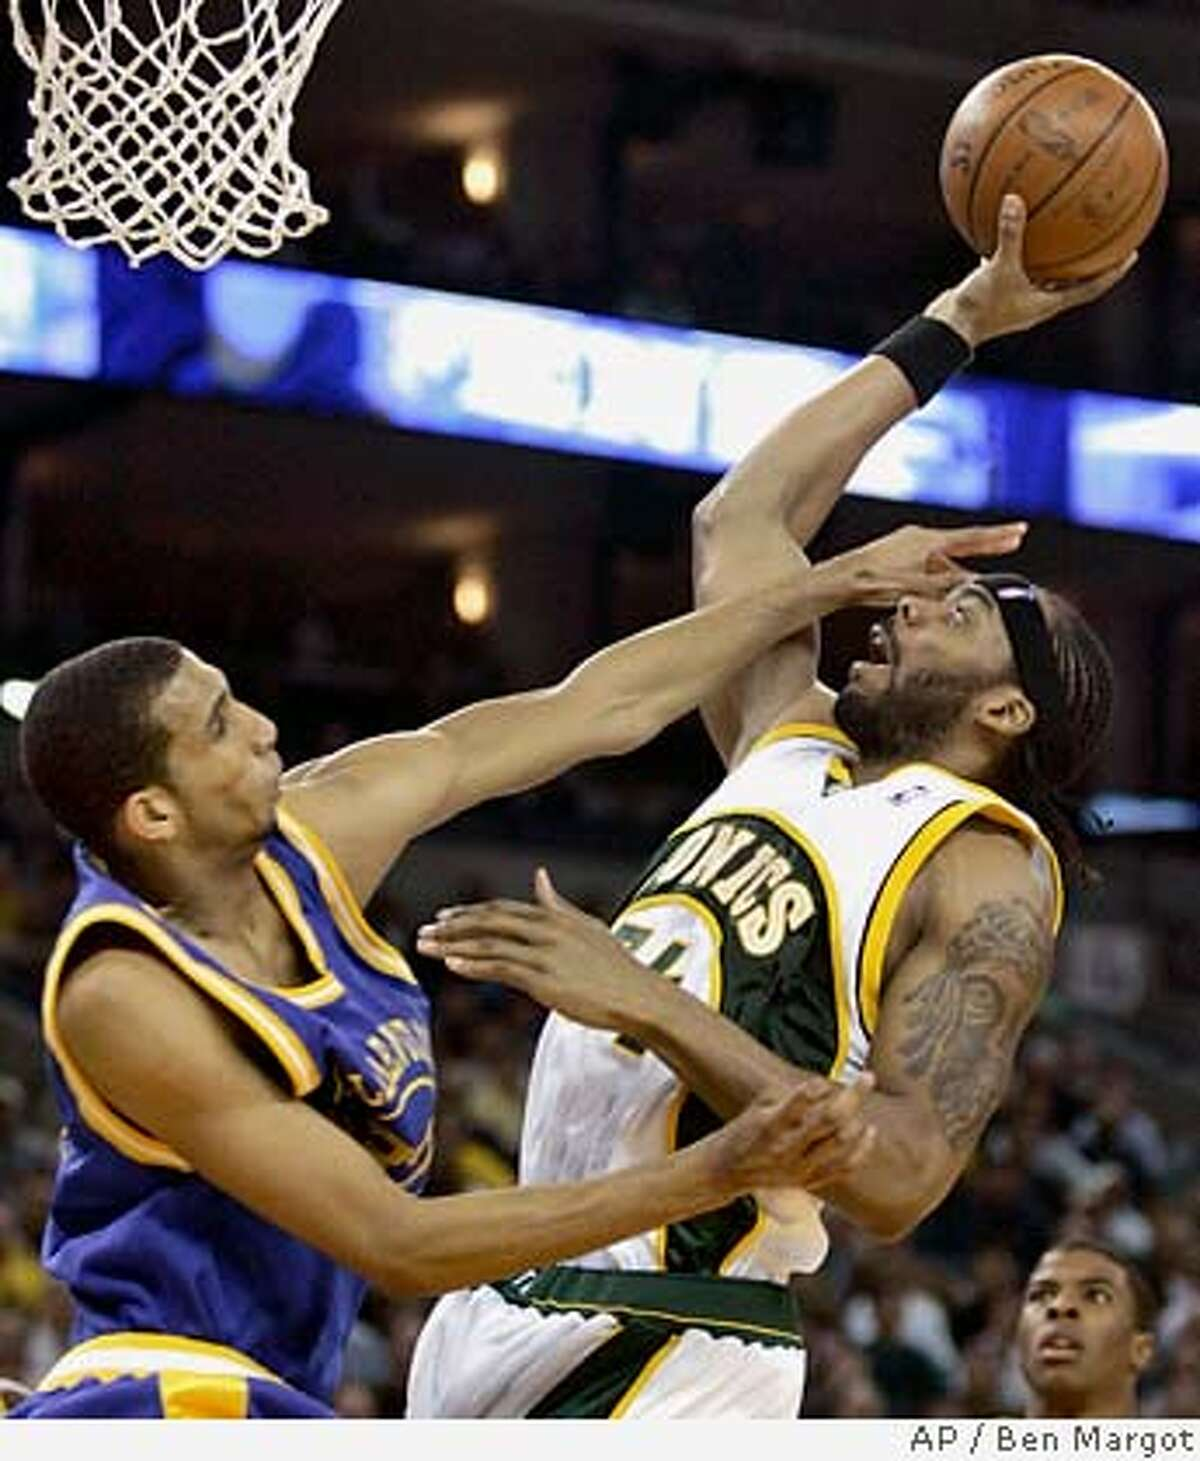 Golden State Warriors' Brandan Wright, left, defends against Seattle Supersonics' Chris Wilcox during the first half of an NBA basketball game Tuesday, Feb. 26, 2008, in Oakland, Calif. (AP Photo/Ben Margot)